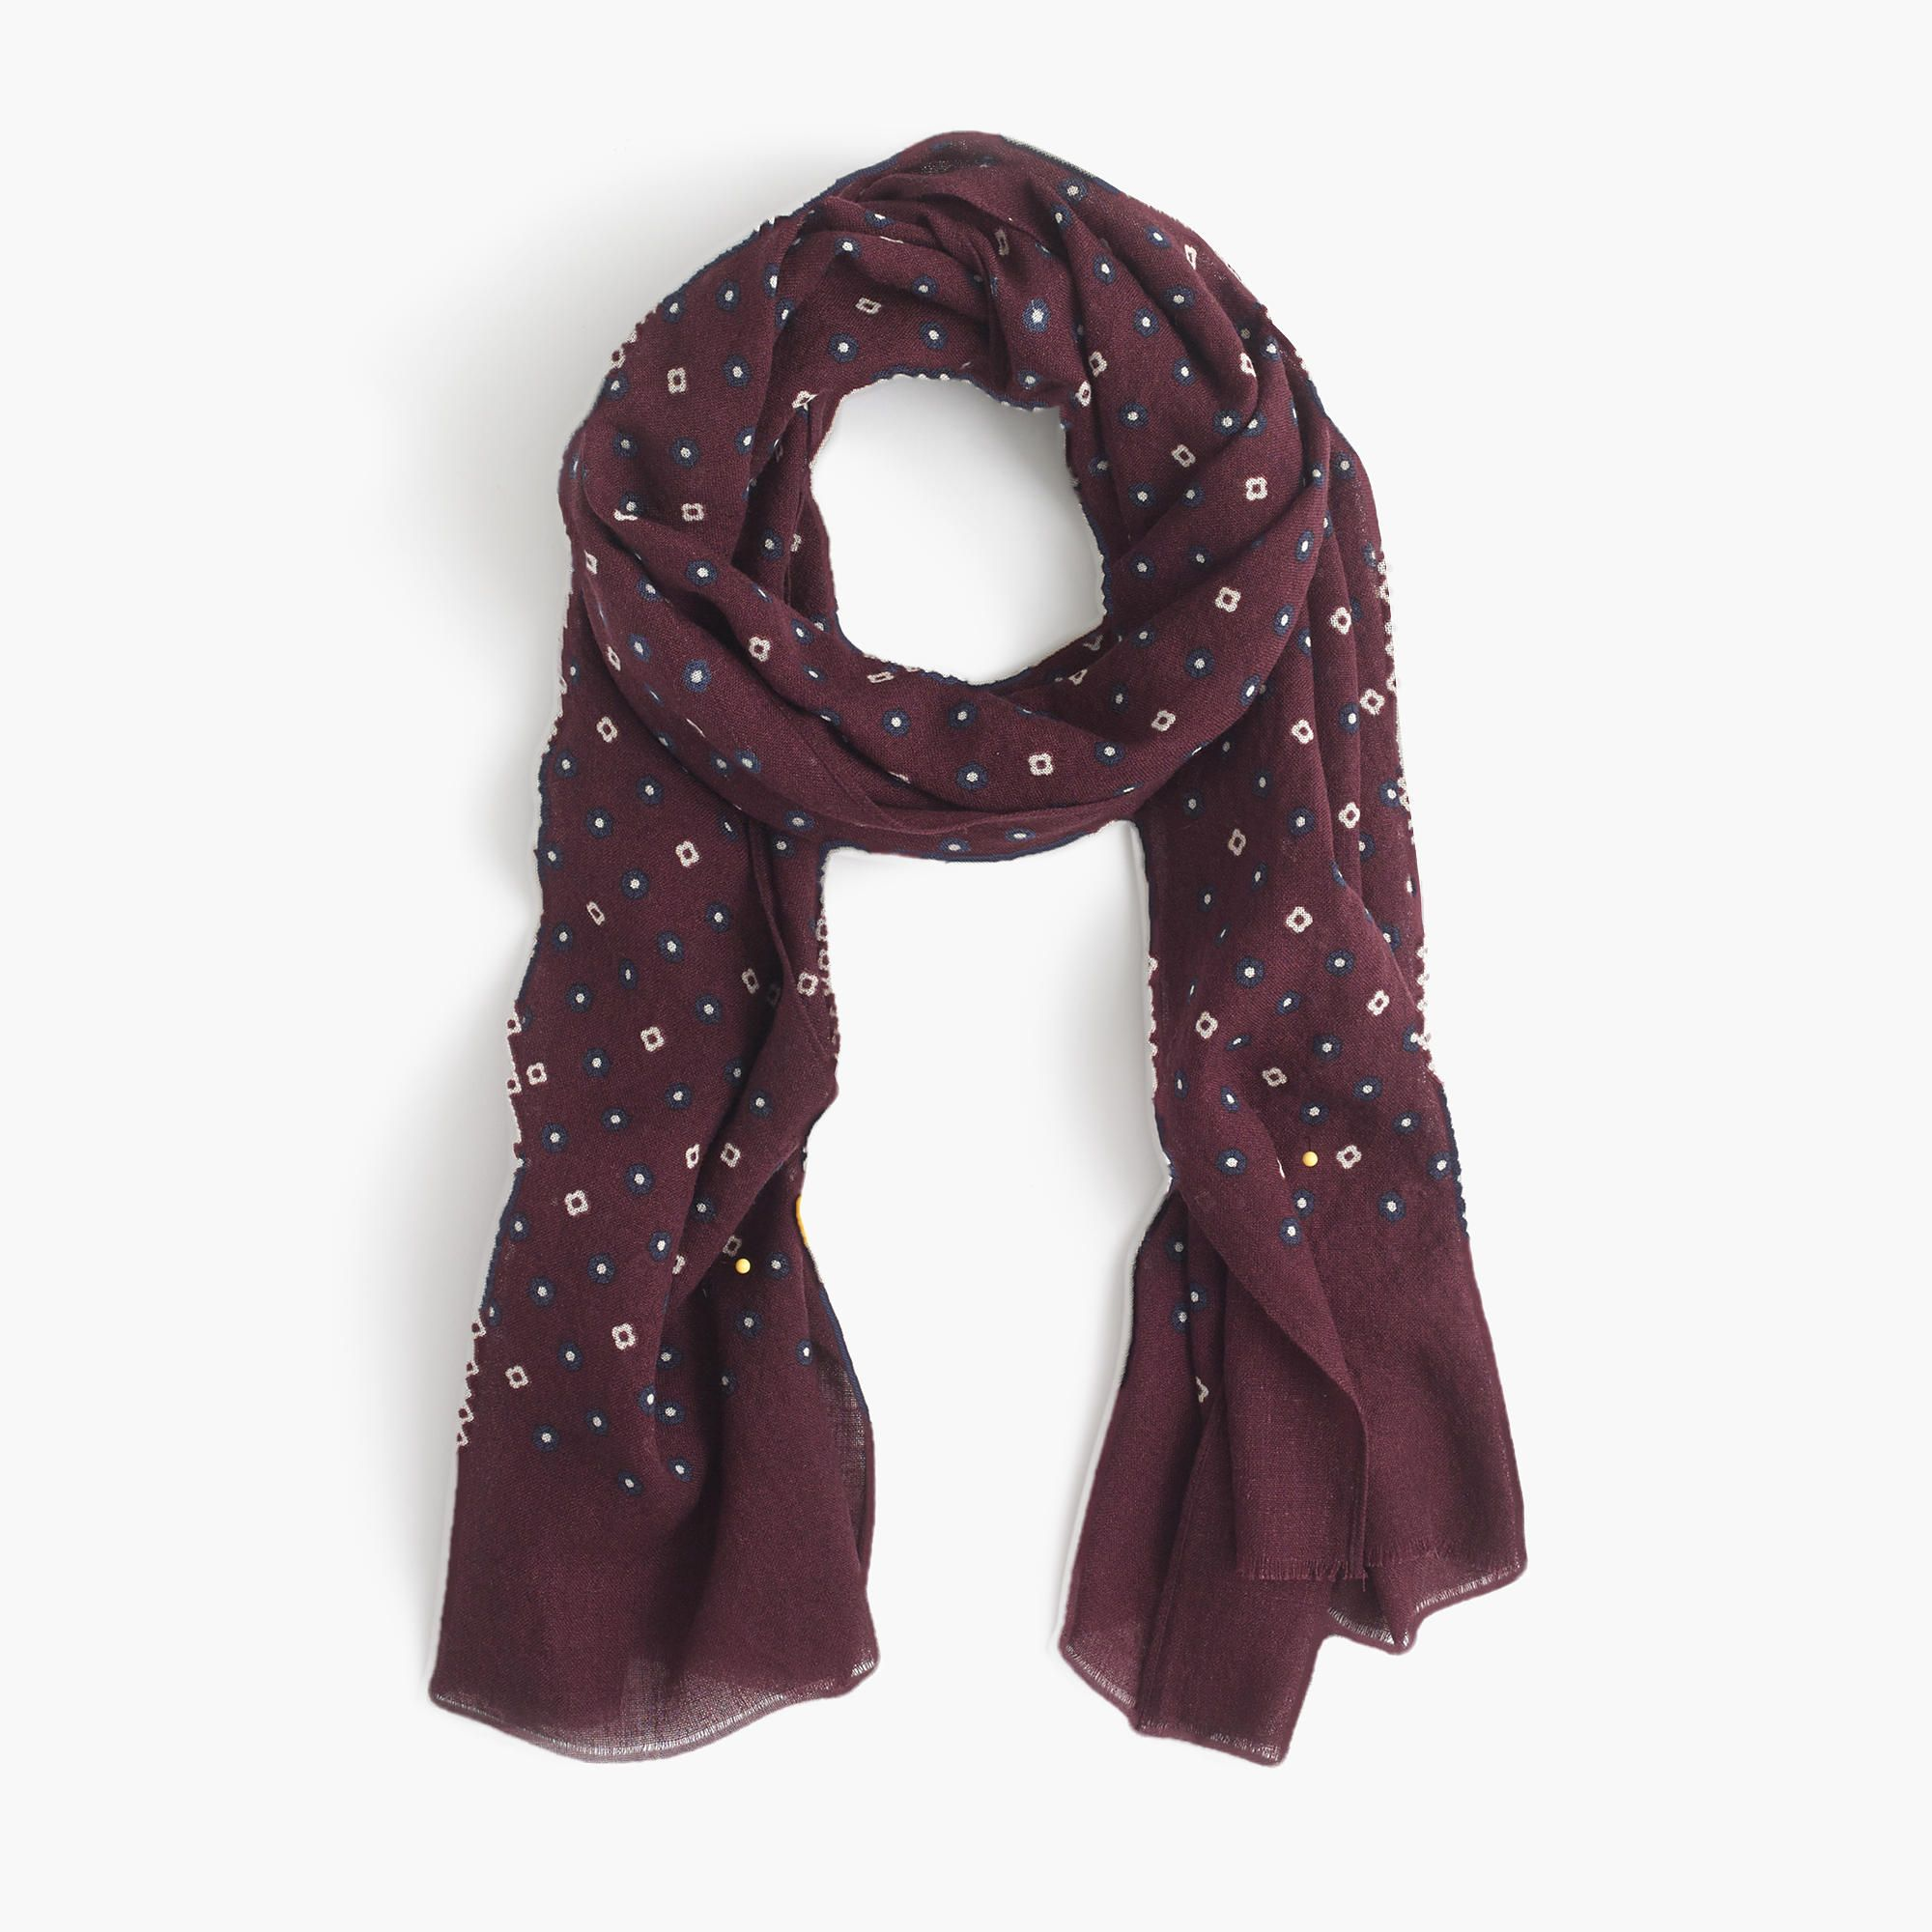 Lightweight wool-silk star and clover scarf   scarves   J.Crew   Rob s  picks   Pinterest 27ec7db2faa